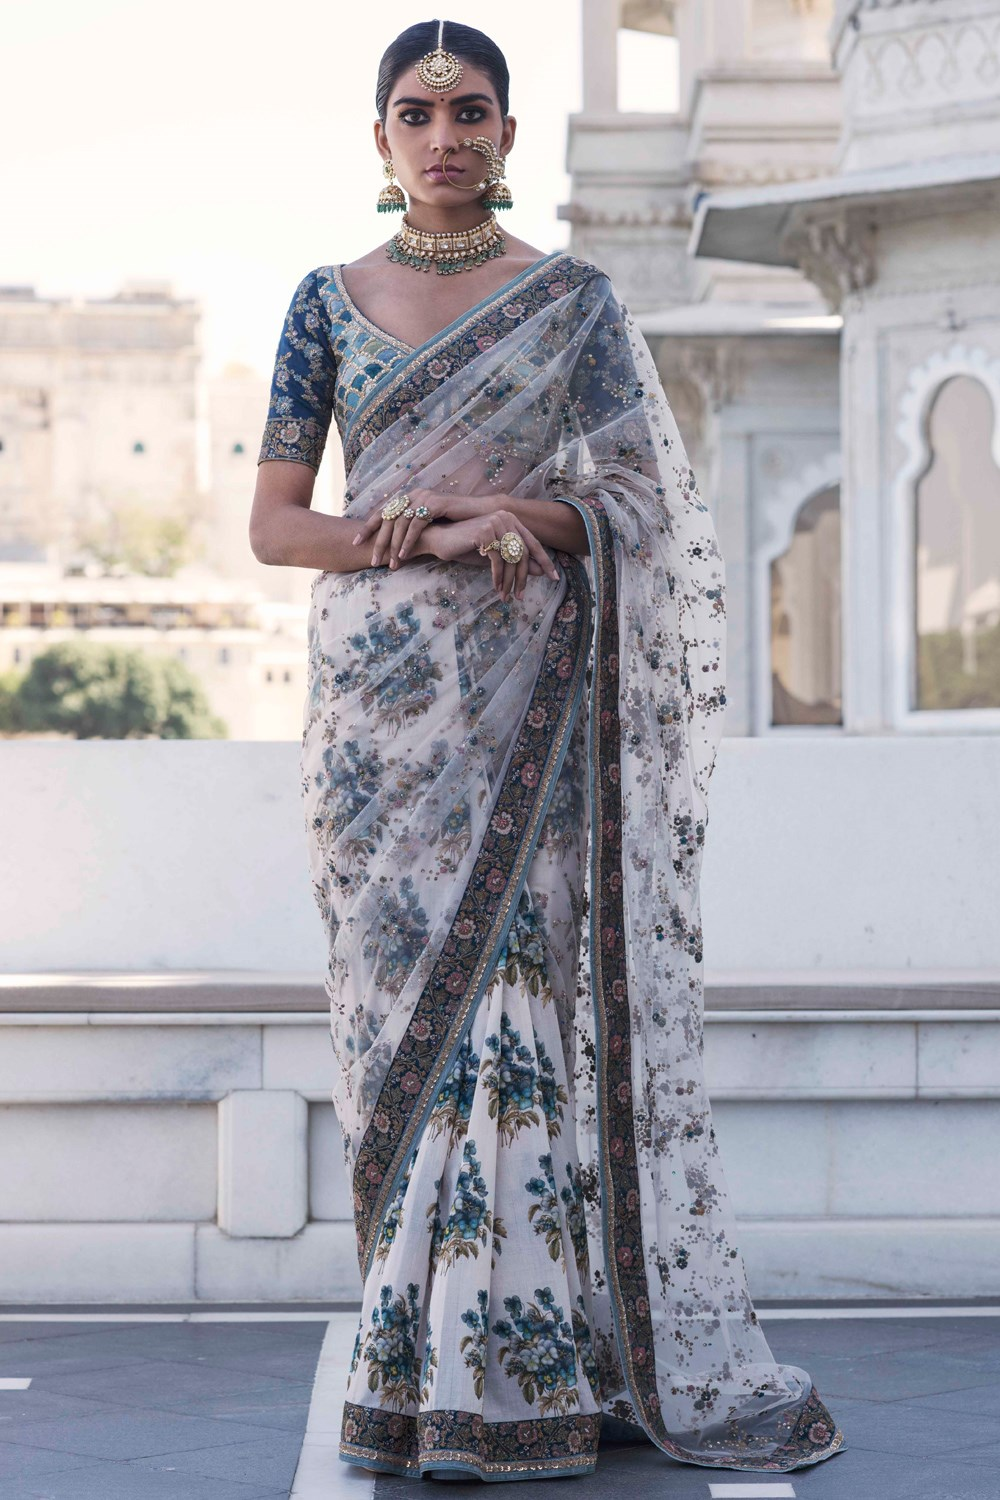 f25c83f95c042 Most Beautiful Sabyasachi Saree Cost and Photos - Frugal2Fab